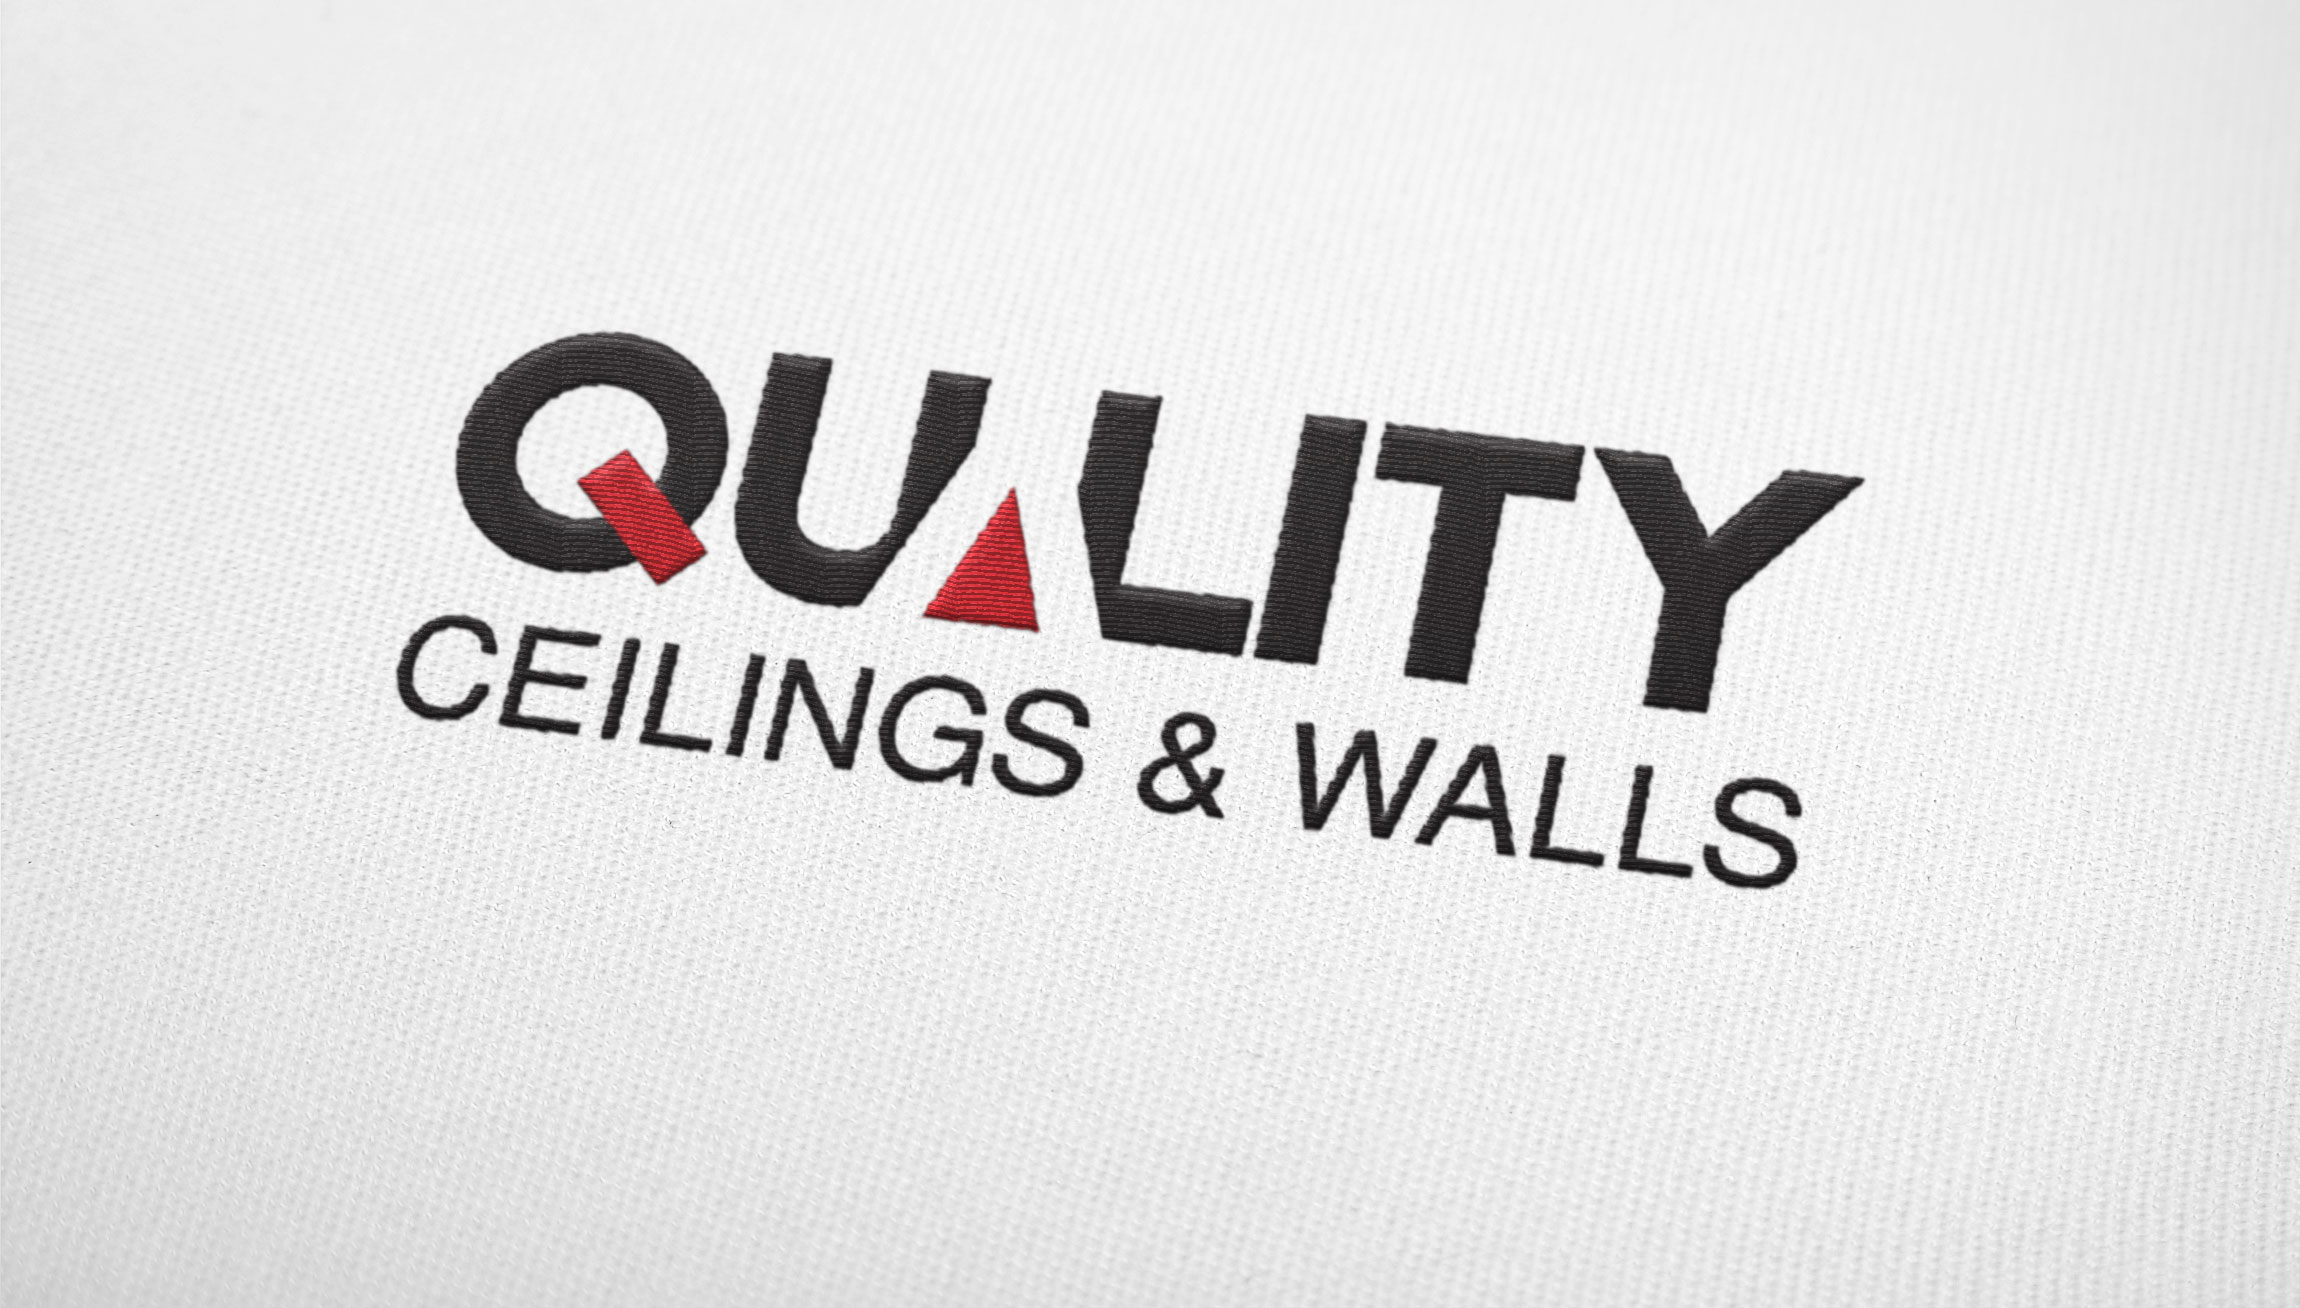 Logo & Branding - Logo design mockup for Quality Ceilings & Walls